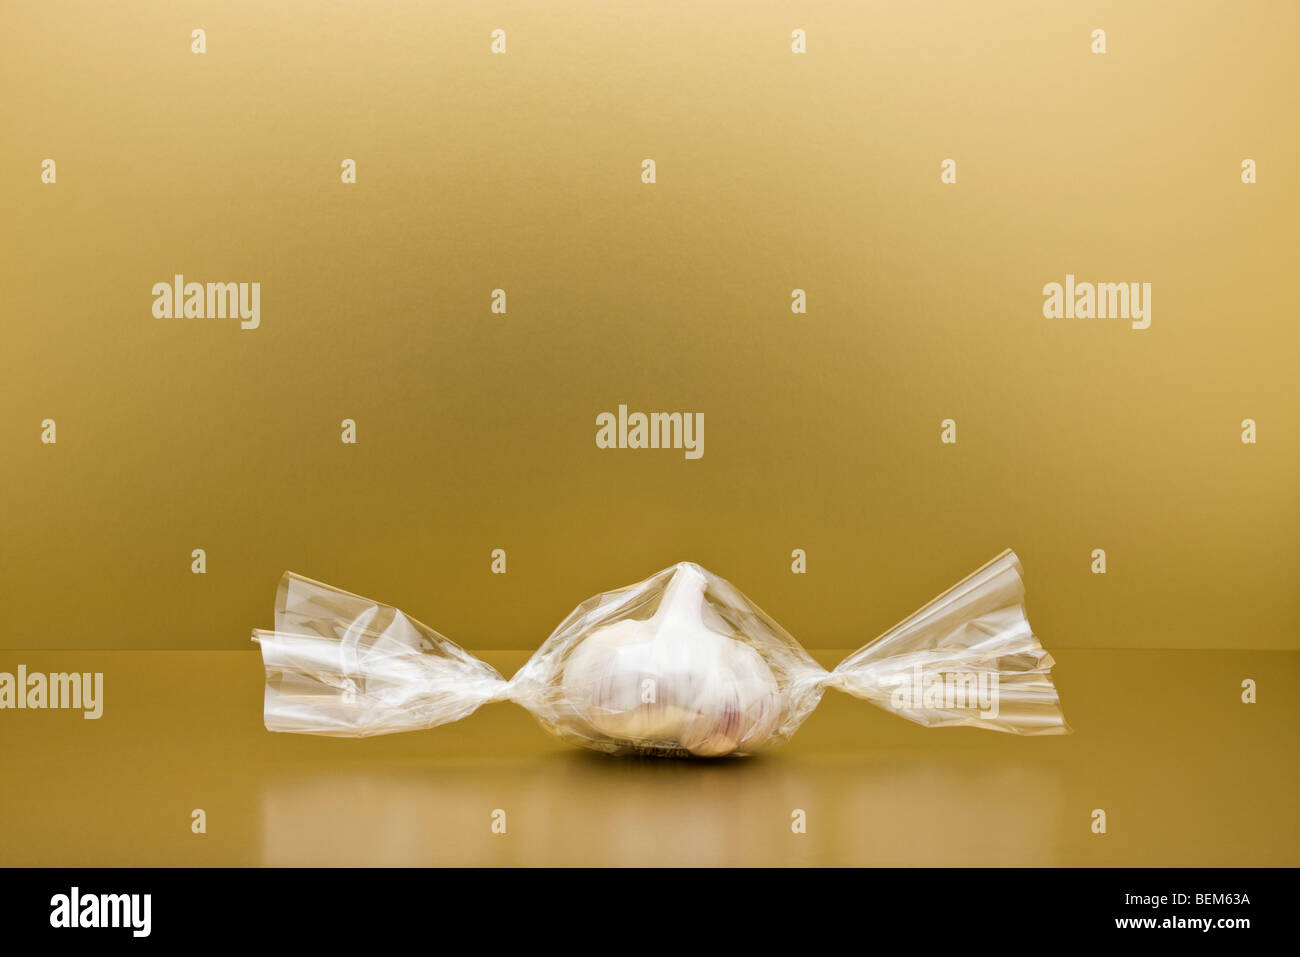 Food concept, head of garlic inside of cellophane candy wrapper - Stock Image